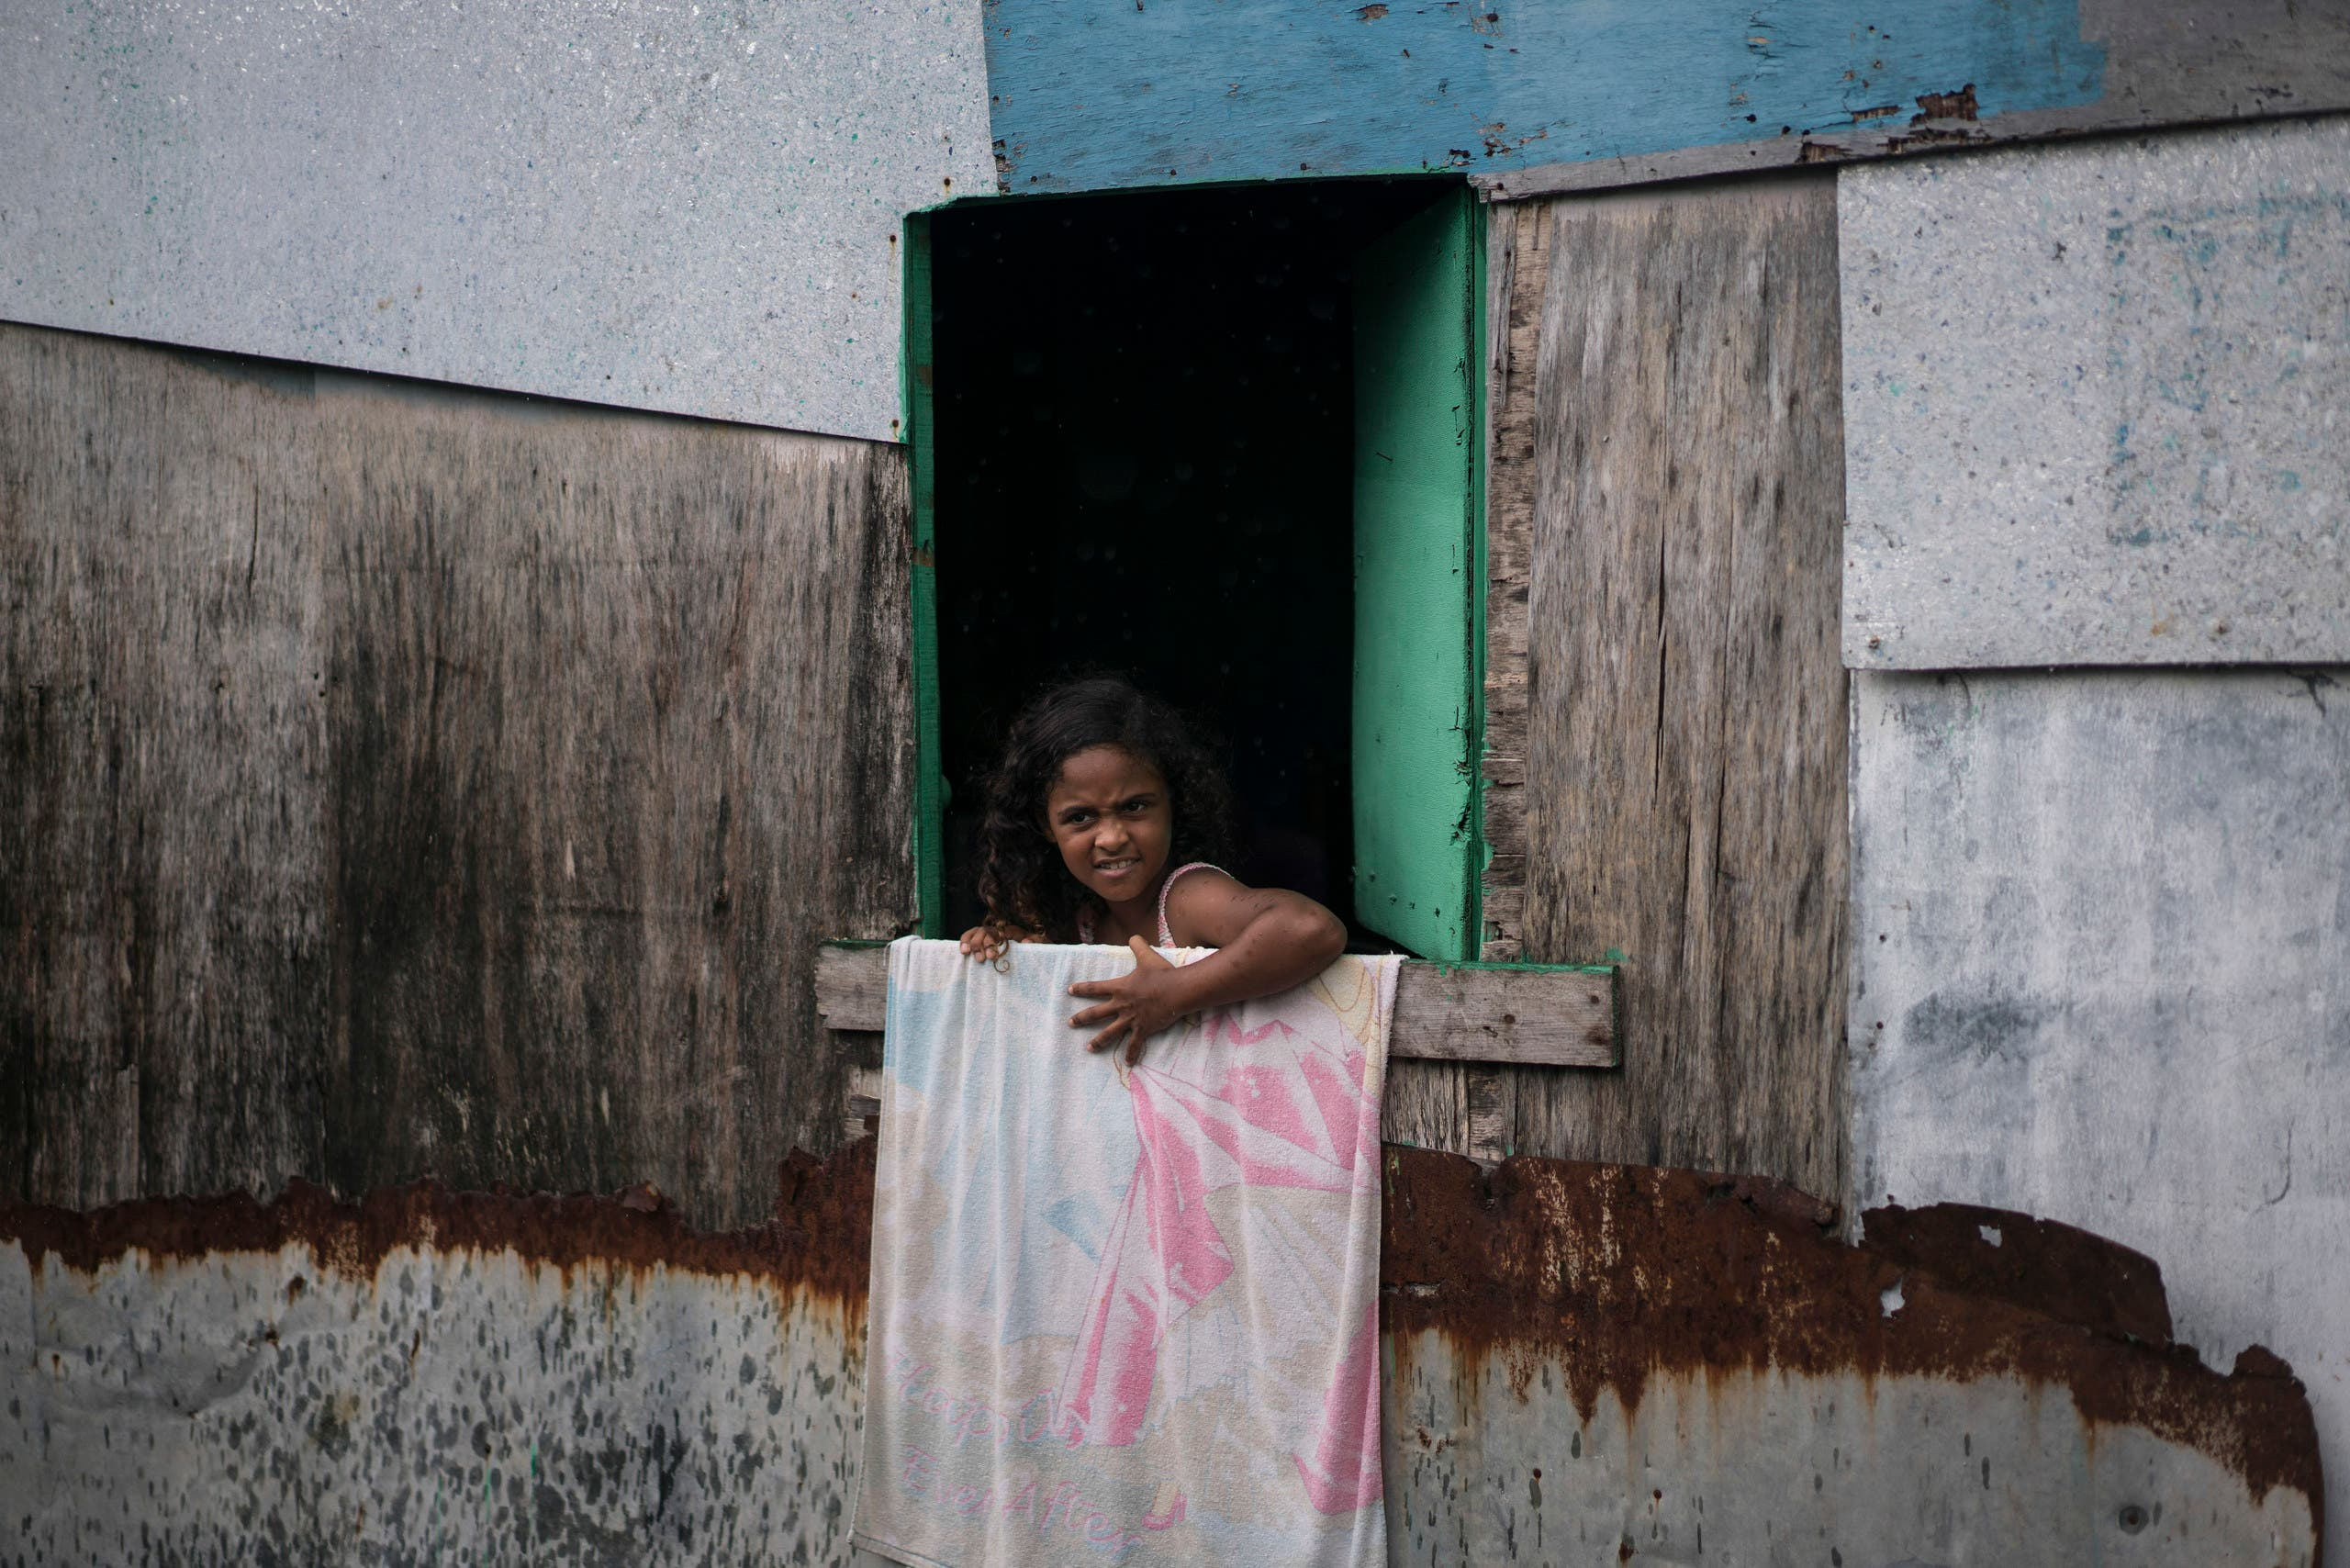 In this Jan. 29, 2016 photo, a girl looks out from her stilt house, built over a polluted body of water at a slum at the epicenter of Brazil's tandem Zika and microcephaly outbreaks, in Recife.